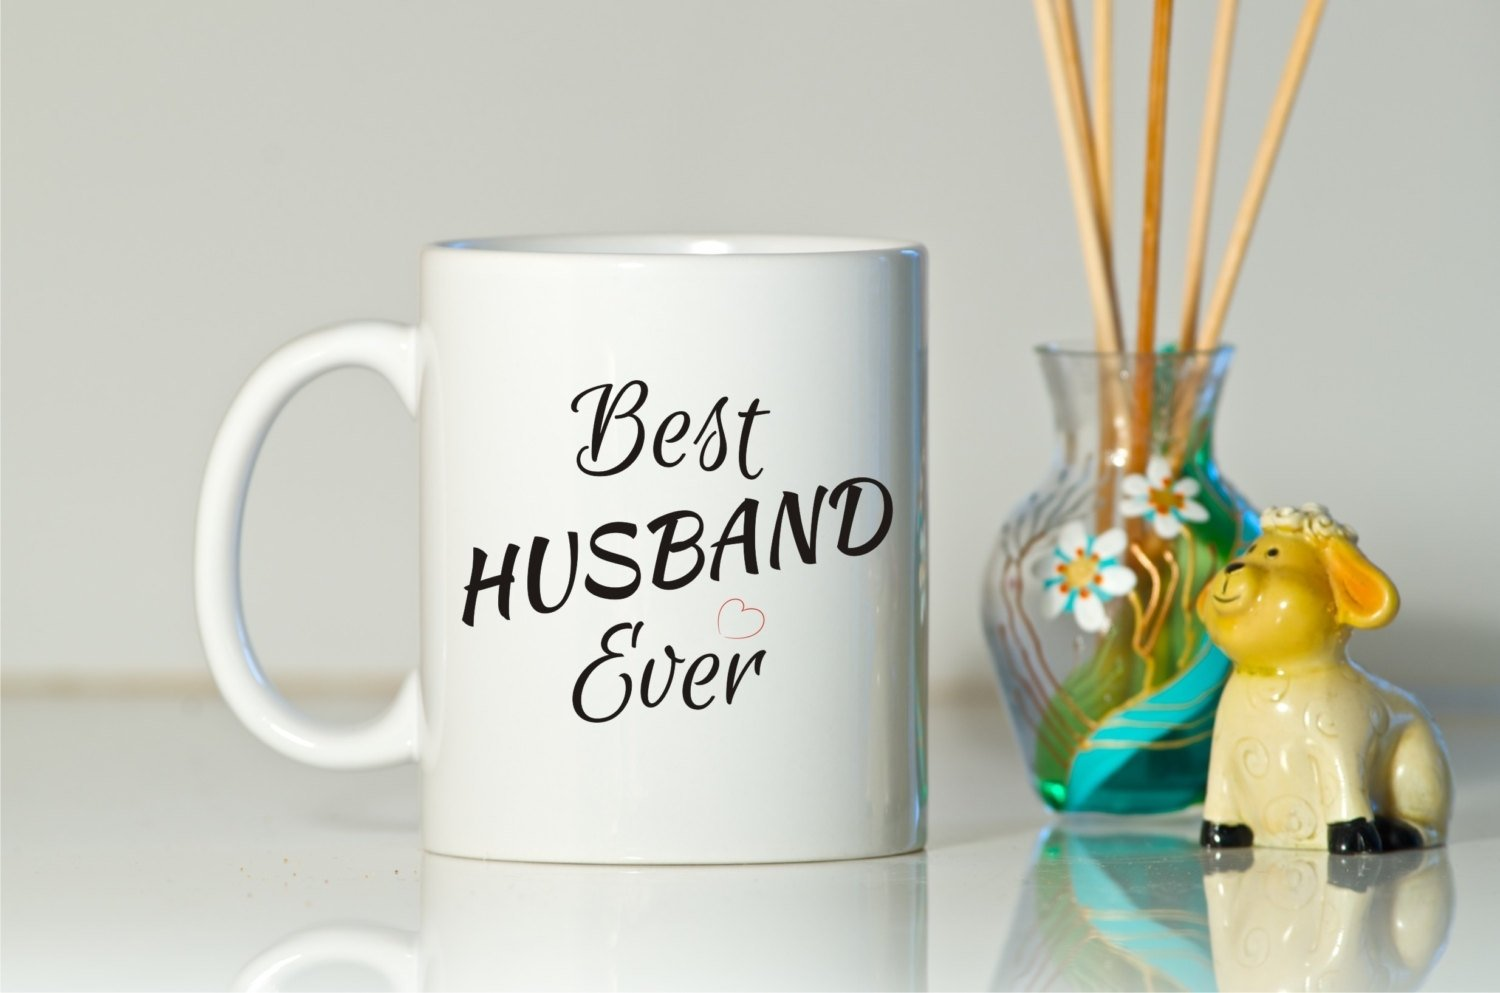 10 Lovely Cheap Birthday Ideas For Husband first birthday gift for husband wife after wedding marriage anniversary 4